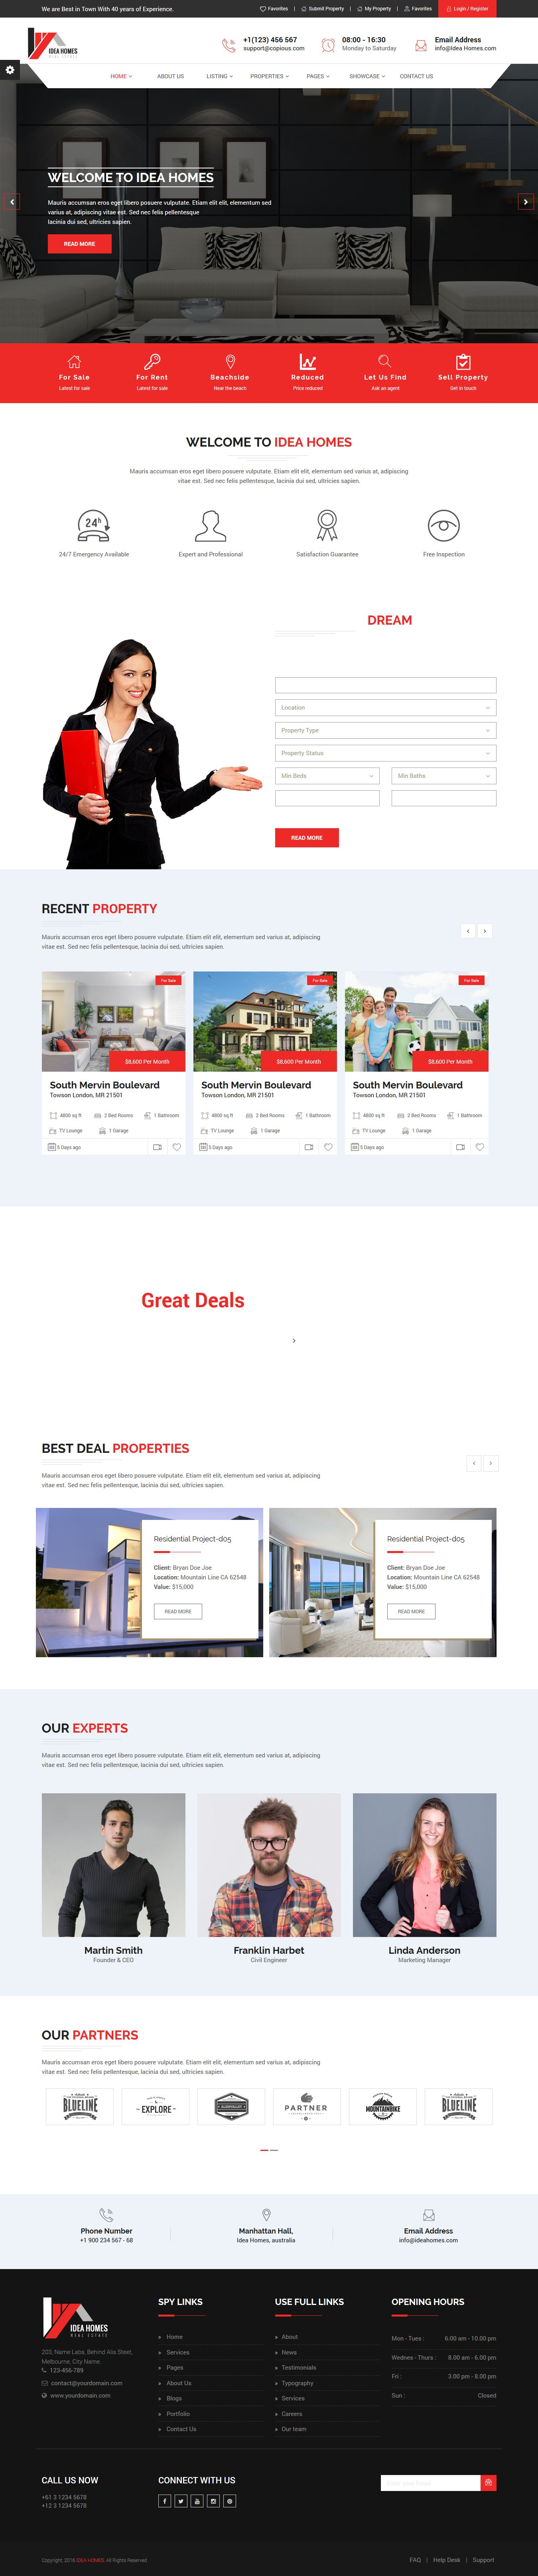 Idea homes - Real Estate Template  Screenshot 1